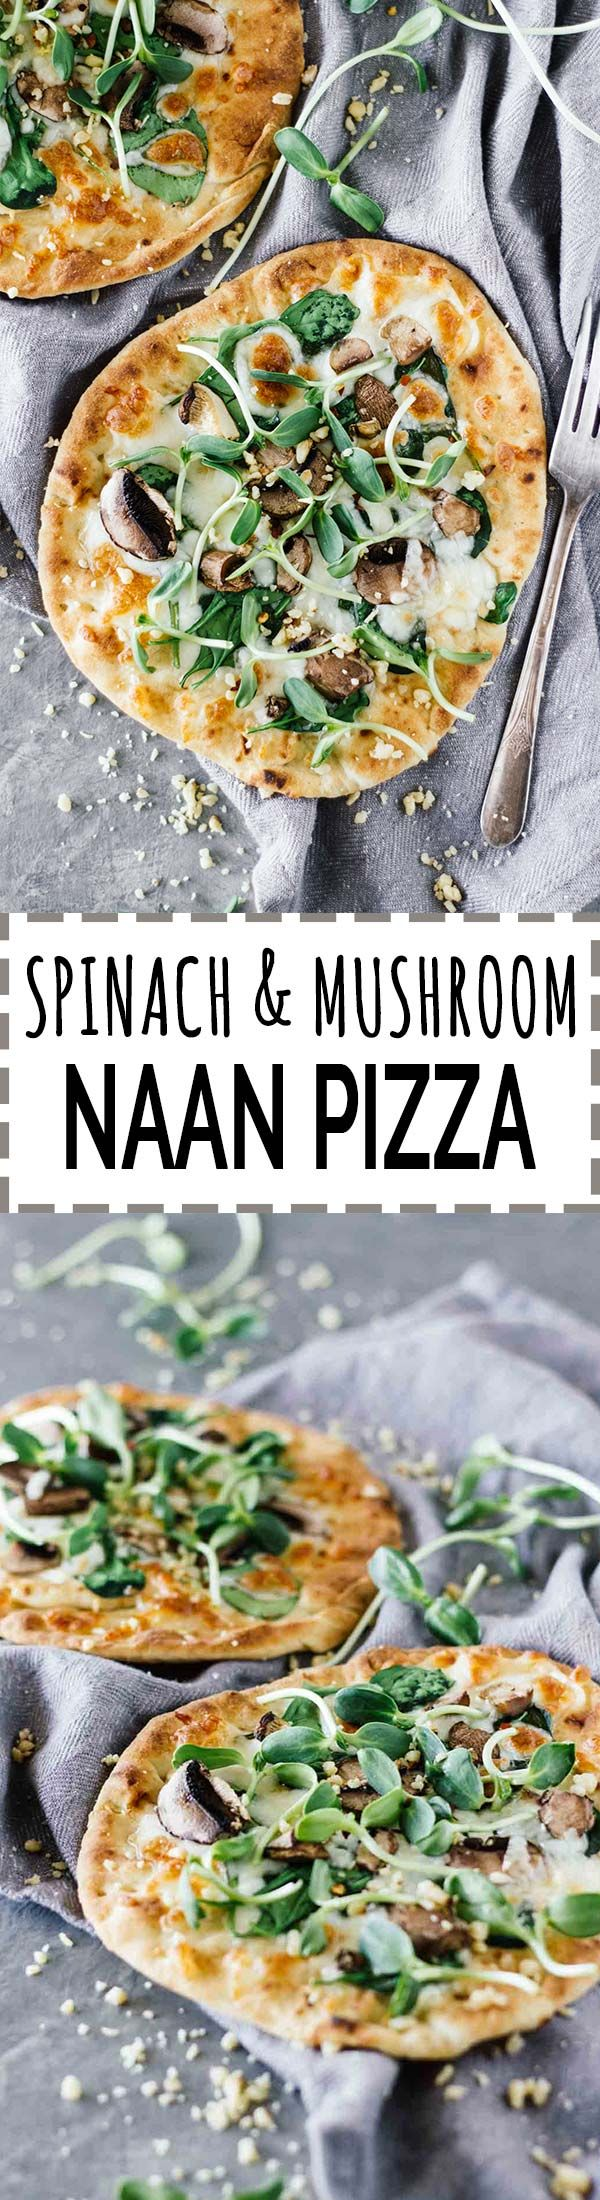 Spinach & Mushroom Naan Pizza! Vegetarian and super easy to make. Perfect for a quick and healthy weeknight dinner!